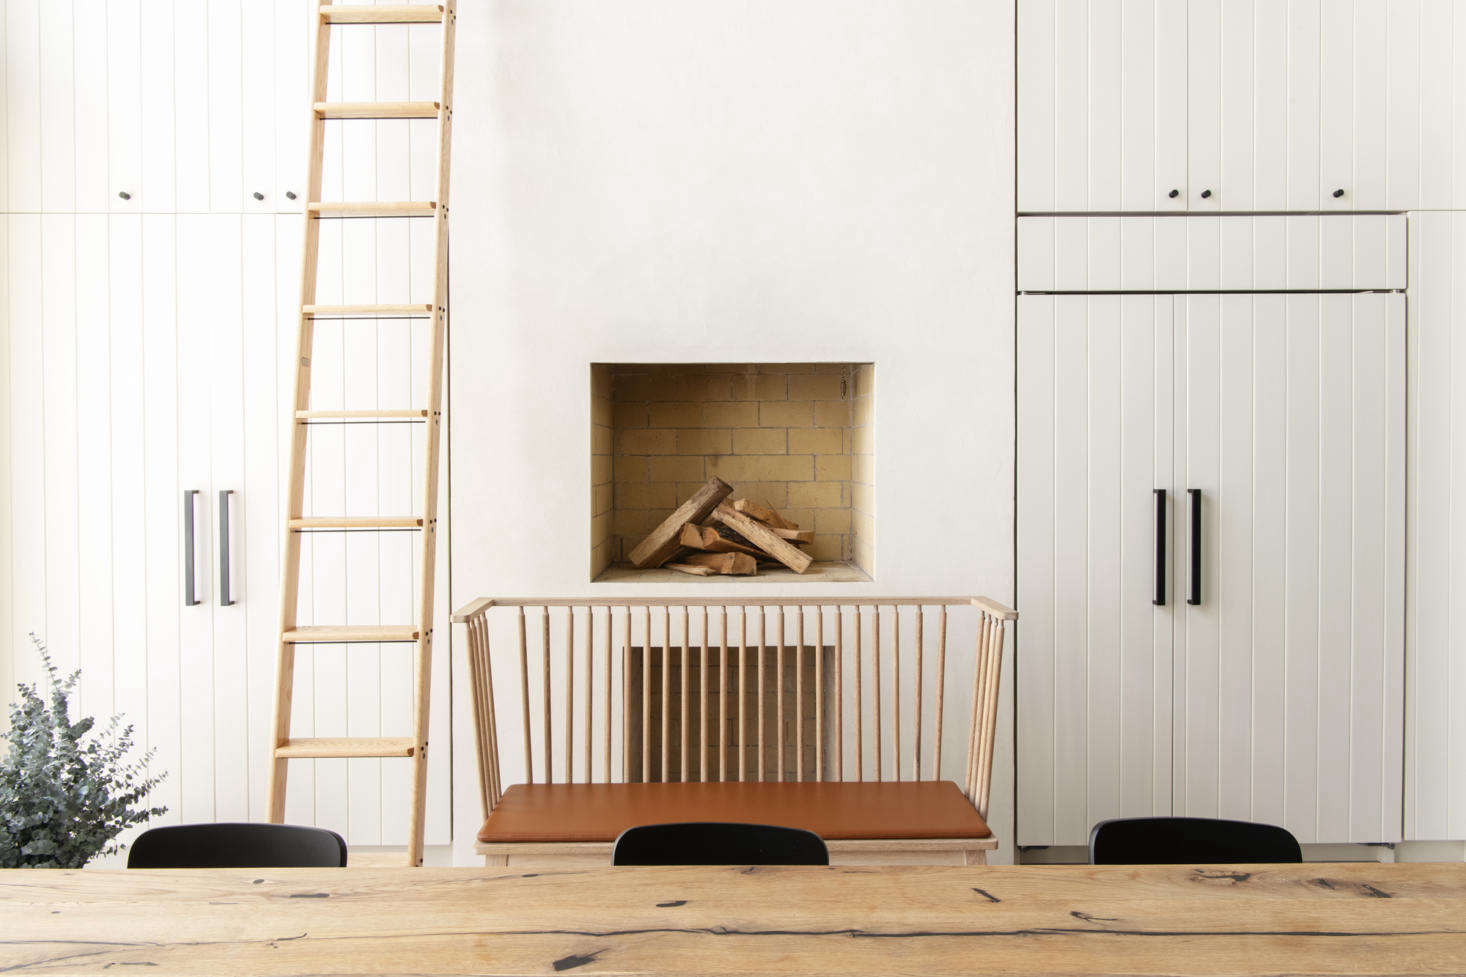 Above: The wood-burning fireplace, a regular fixture in Roberts' kitchen designs, is made to be fitted with a pizza oven, Korean-style barbecue, and other inserts. Photography by Dustin Askland, courtesy of Elizabeth Roberts from Serial Remodelers Settle Down: A Brooklyn Townhouse Reinvention from Elizabeth Roberts.